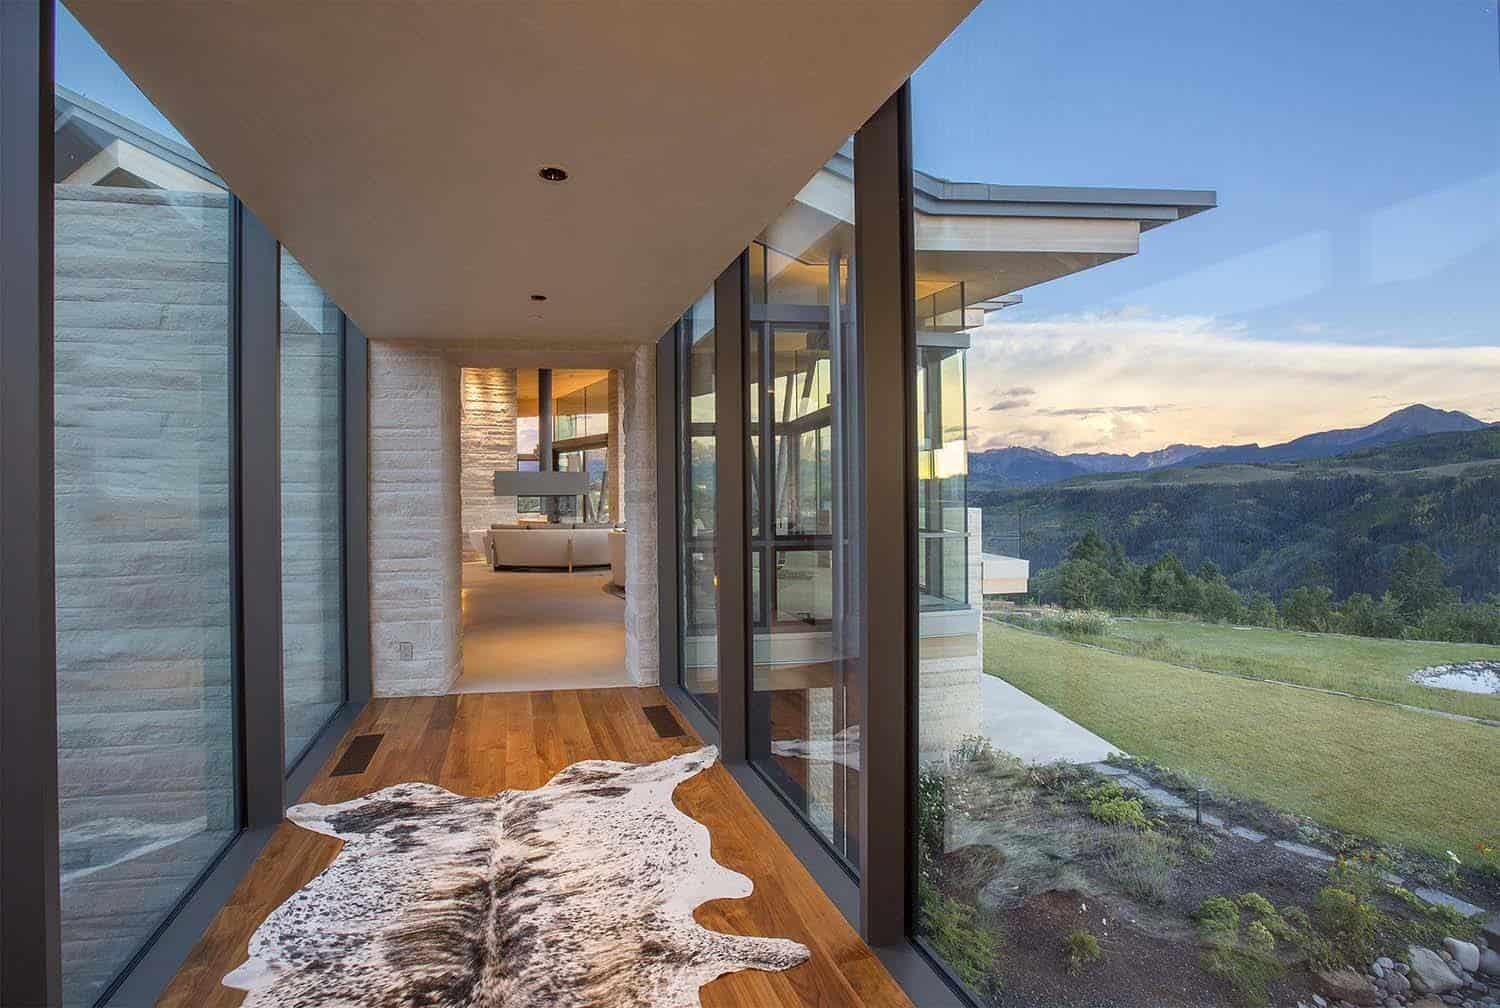 Modern-Residence-Colorado-Poss Architecture-27-1 Kindesign